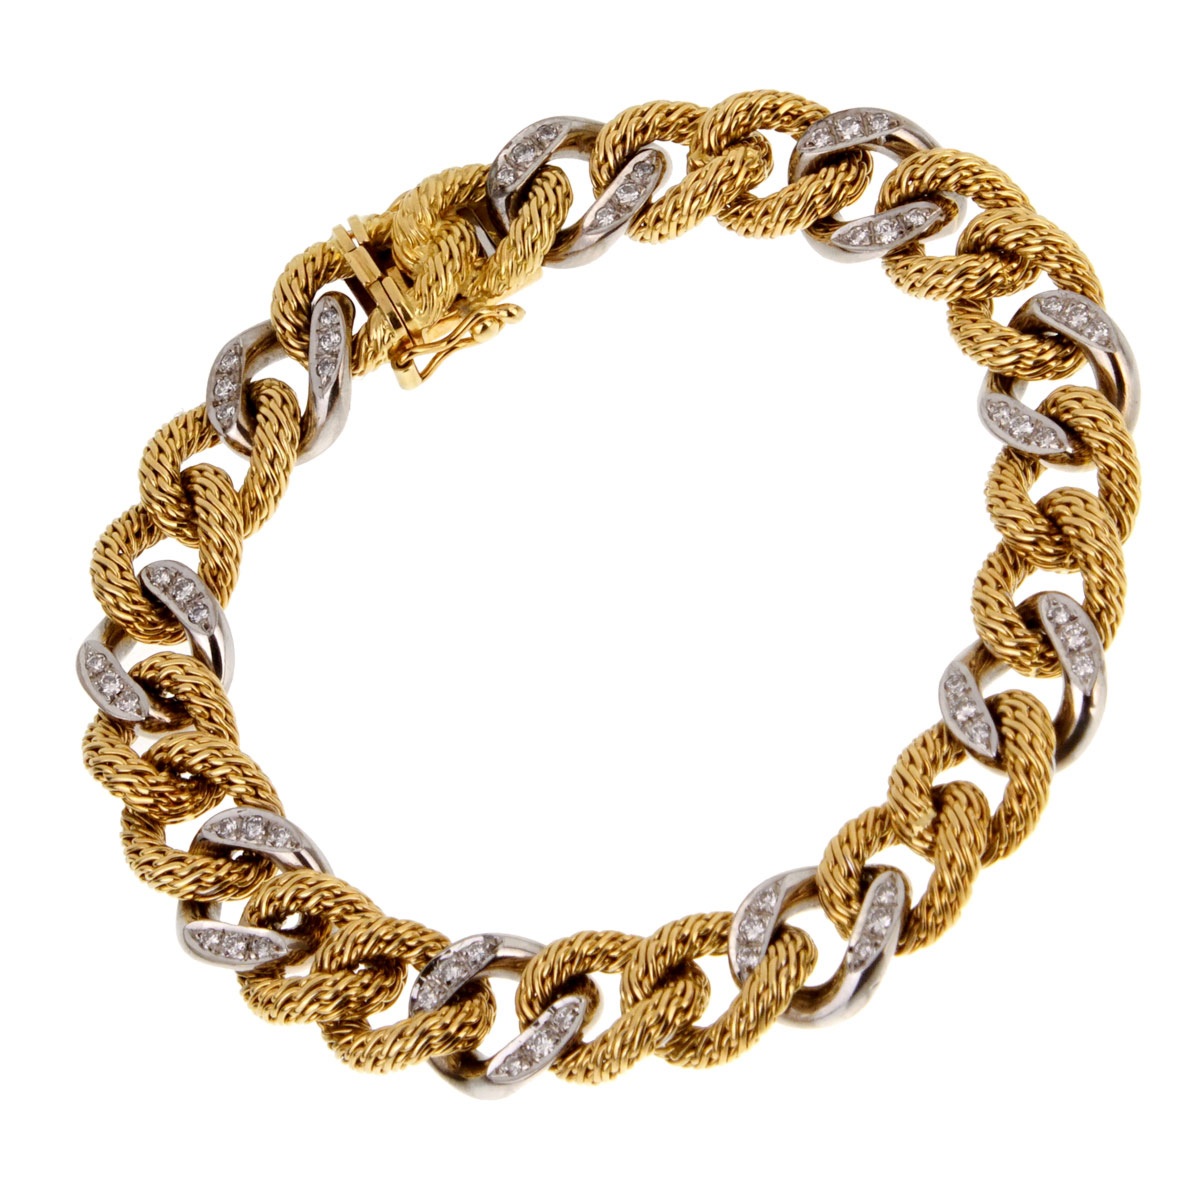 Geoges Lenfant for Piaget Diamond Yellow Gold Bracelet - Piaget Jewelry